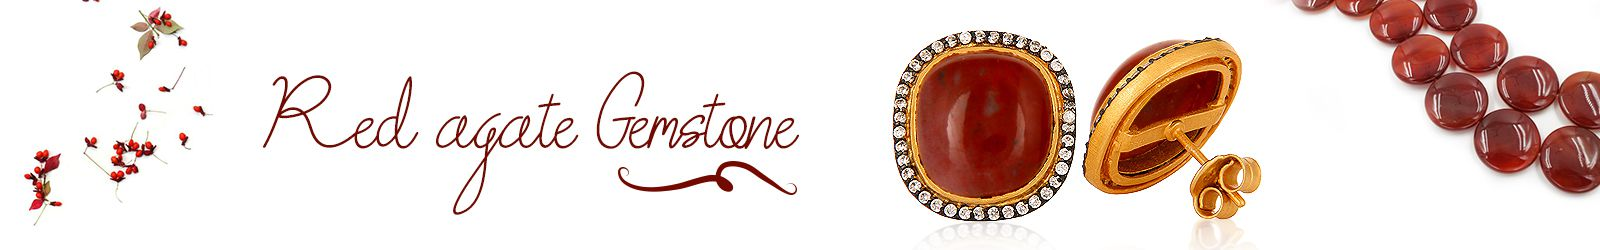 Wholesale Red Agate Gemstone Silver Jewelry Manufacturer in Jaipur